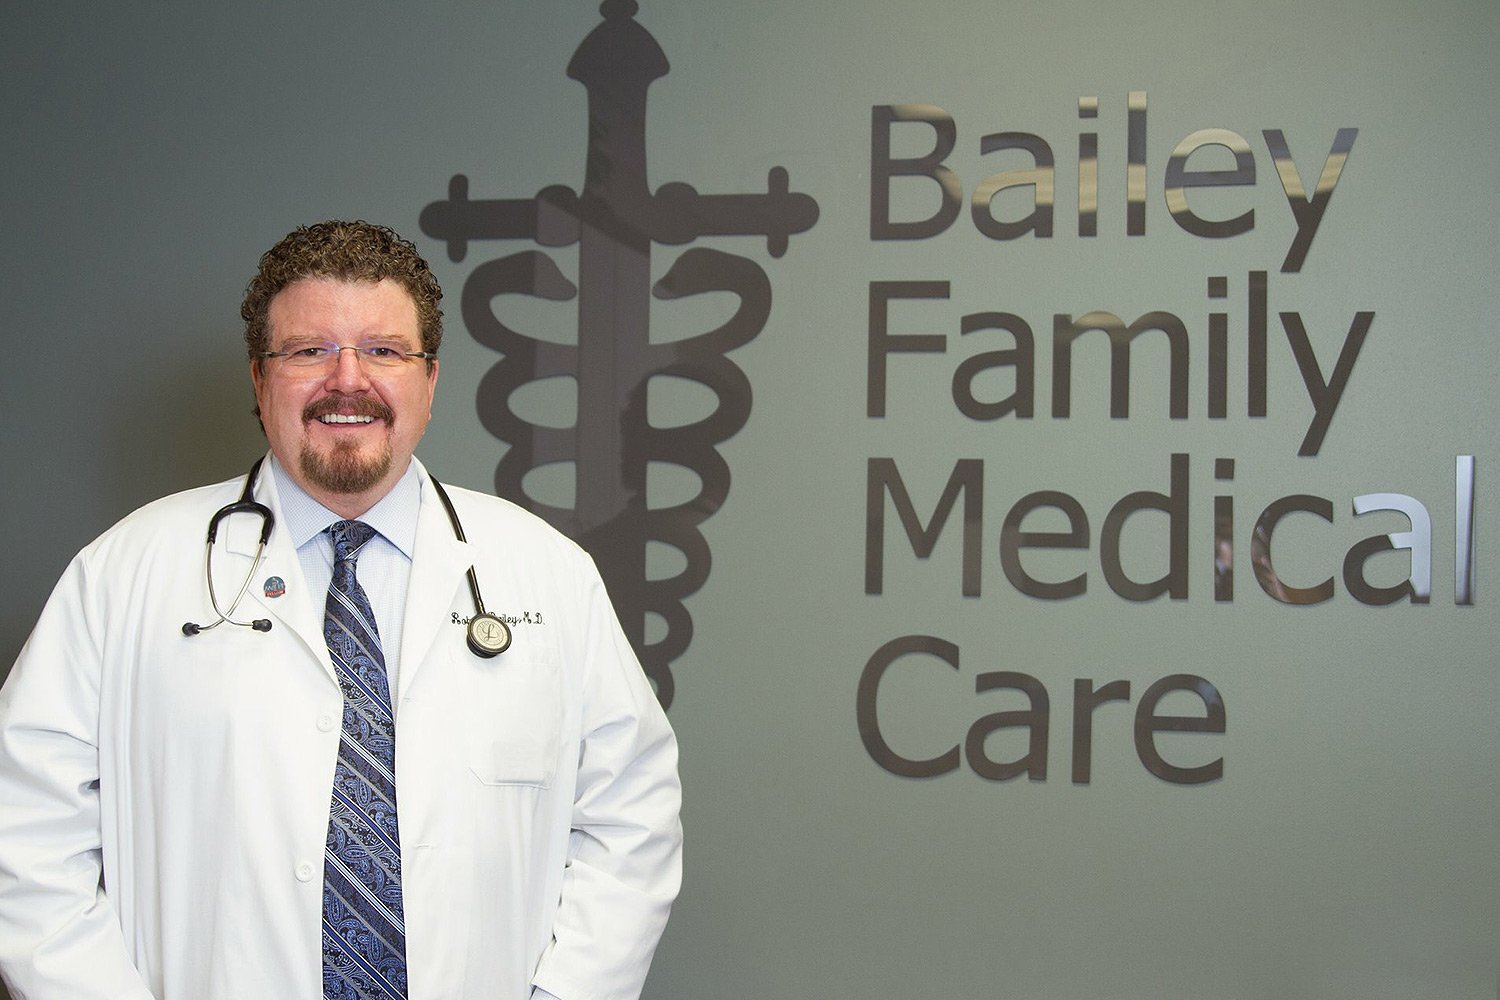 dr bailey family medical care